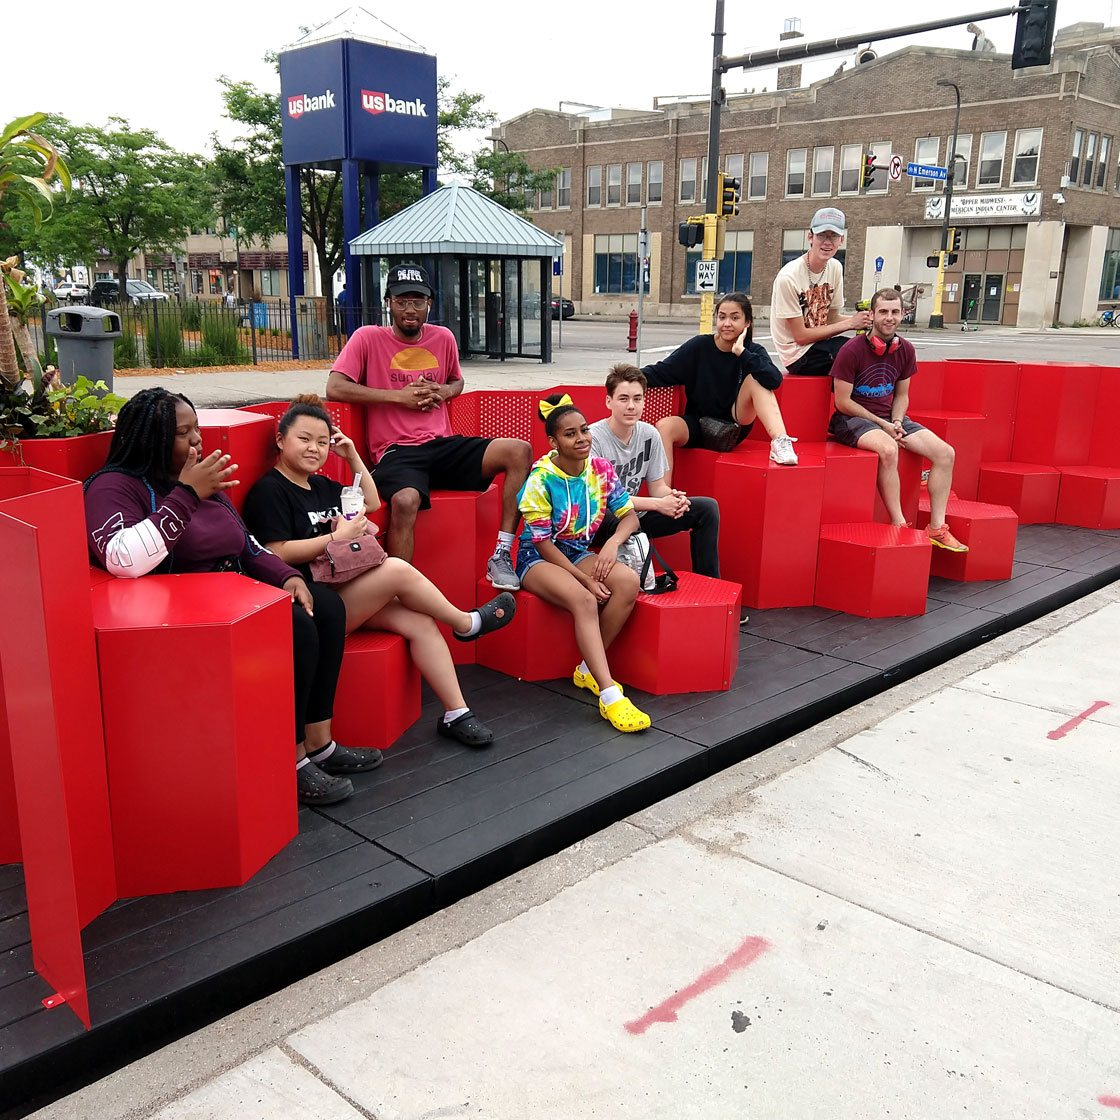 A group of people sitting on a modular seating area